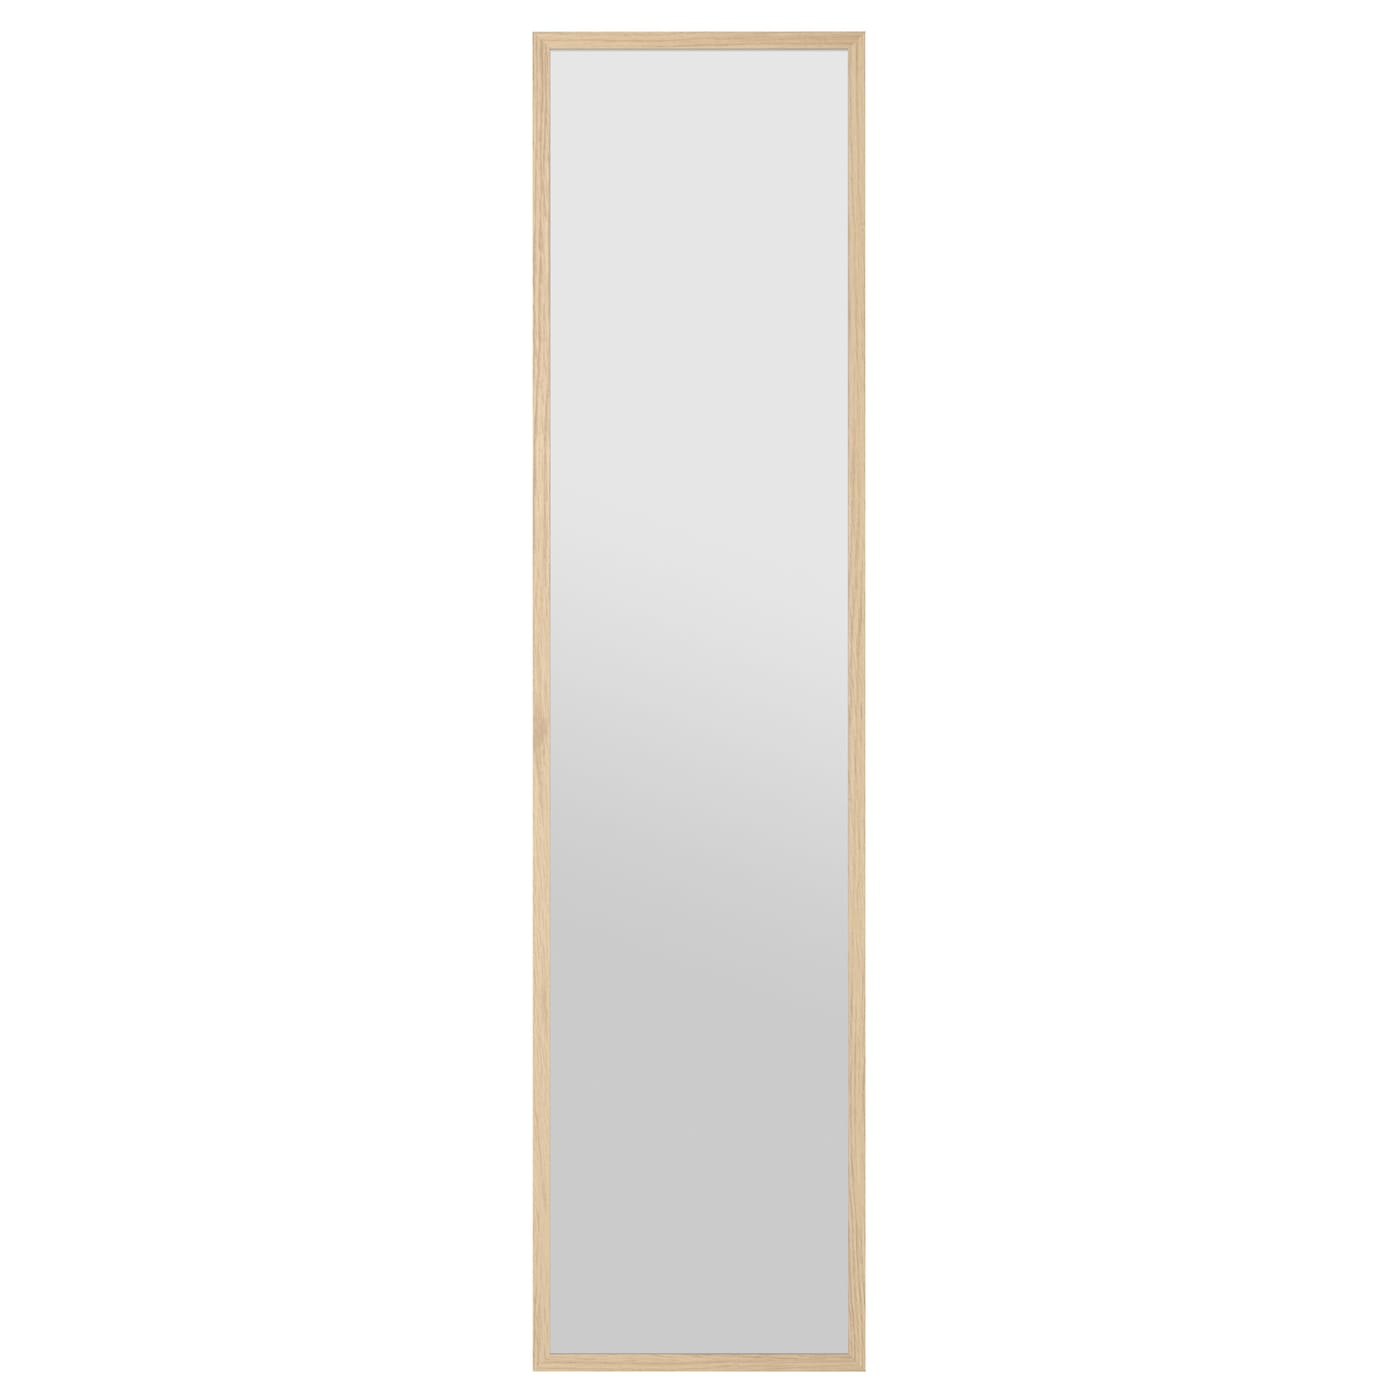 Stave mirror white stained oak effect 40x160 cm ikea for Miroir 110 x 90